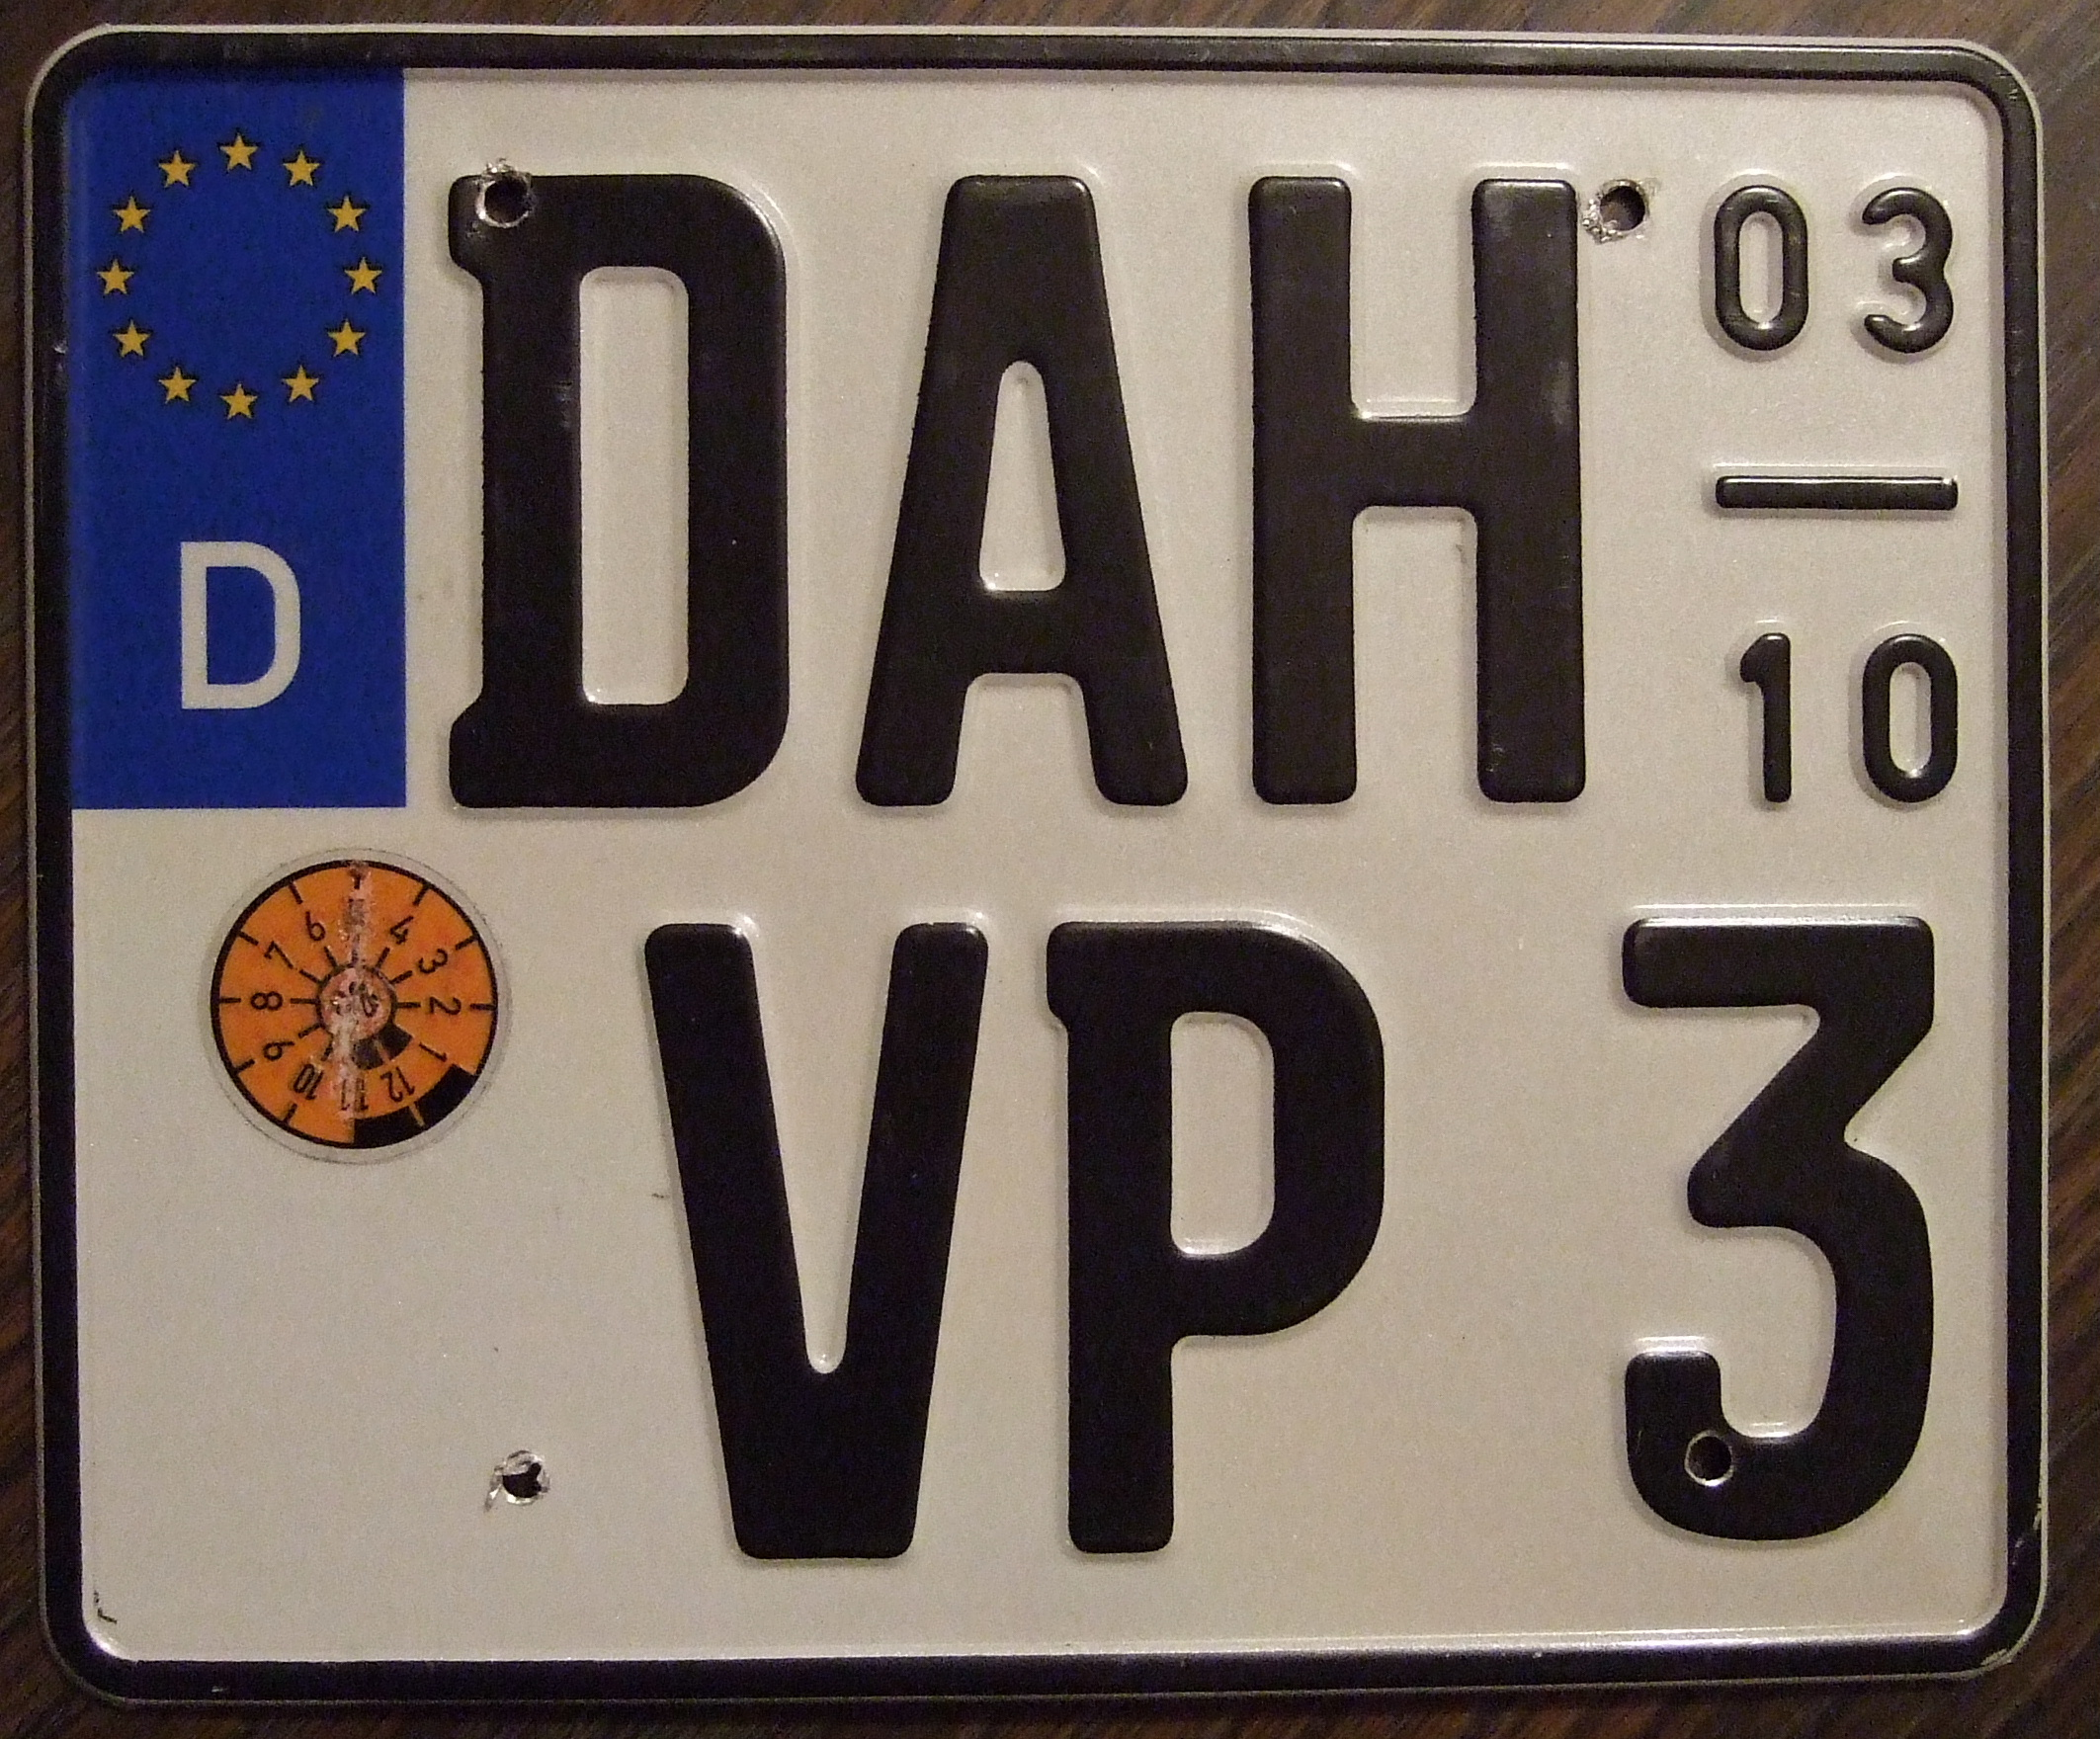 Motorcycle Registration Number